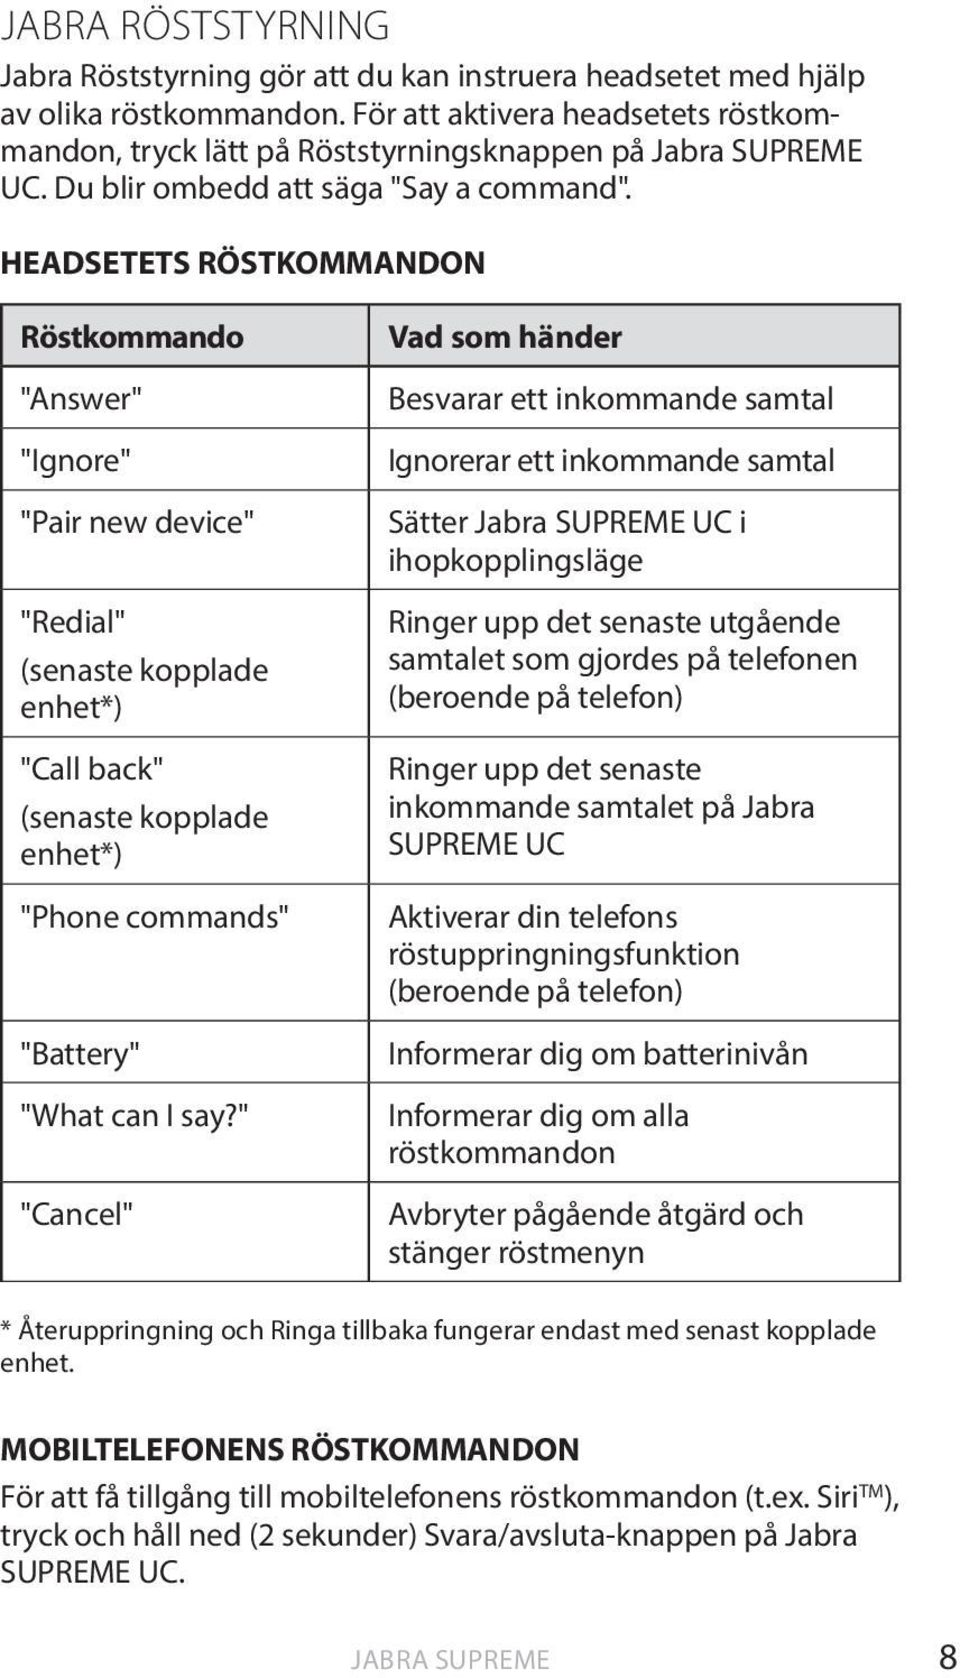 "HEADSETETS RÖSTKOMMANDON Röstkommando ""Answer"" ""Ignore"" ""Pair new device"" ""Redial"" (senaste kopplade enhet*) ""Call back"" (senaste kopplade enhet*) ""Phone commands"" ""Battery"" ""What can I say?"